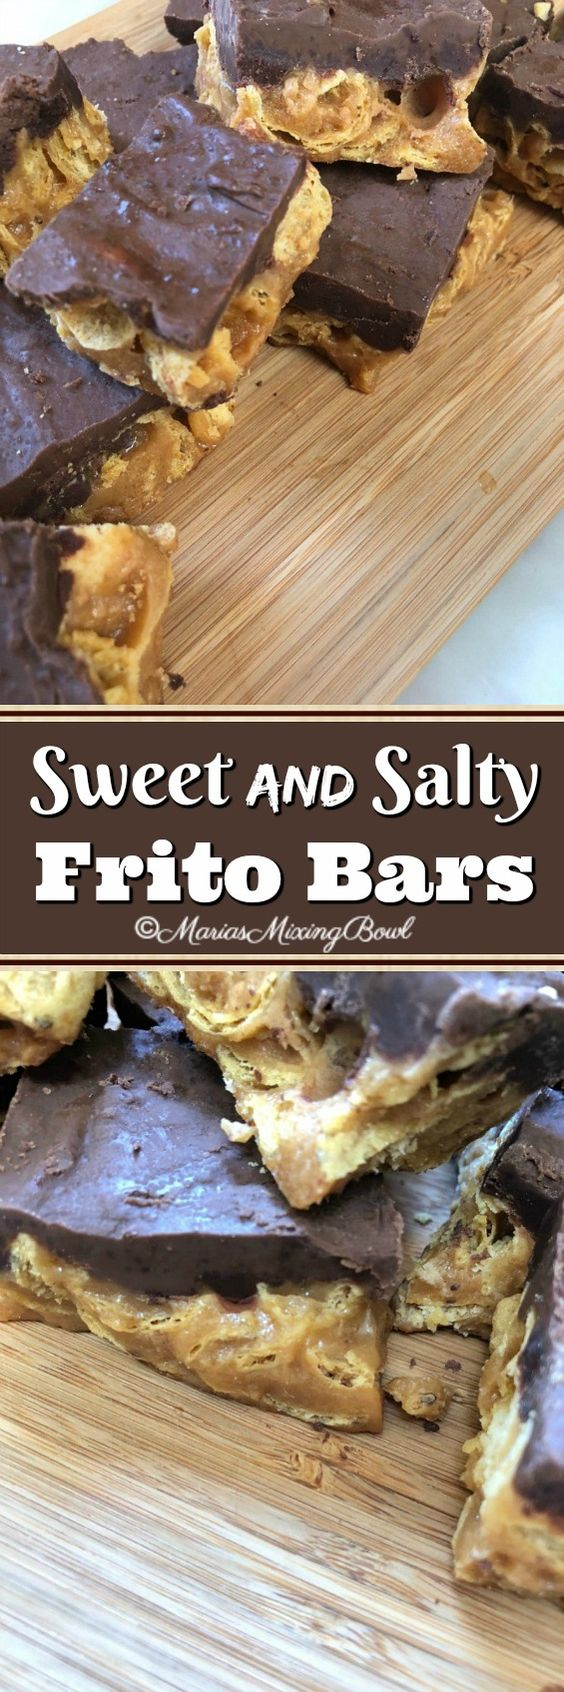 Sweet and Salty Frito Bars - Looking for that perfect sweet and salty treat? Here it is! Sweet, crunchy, salty, peanut butter and chocolate. How can you go wrong?!